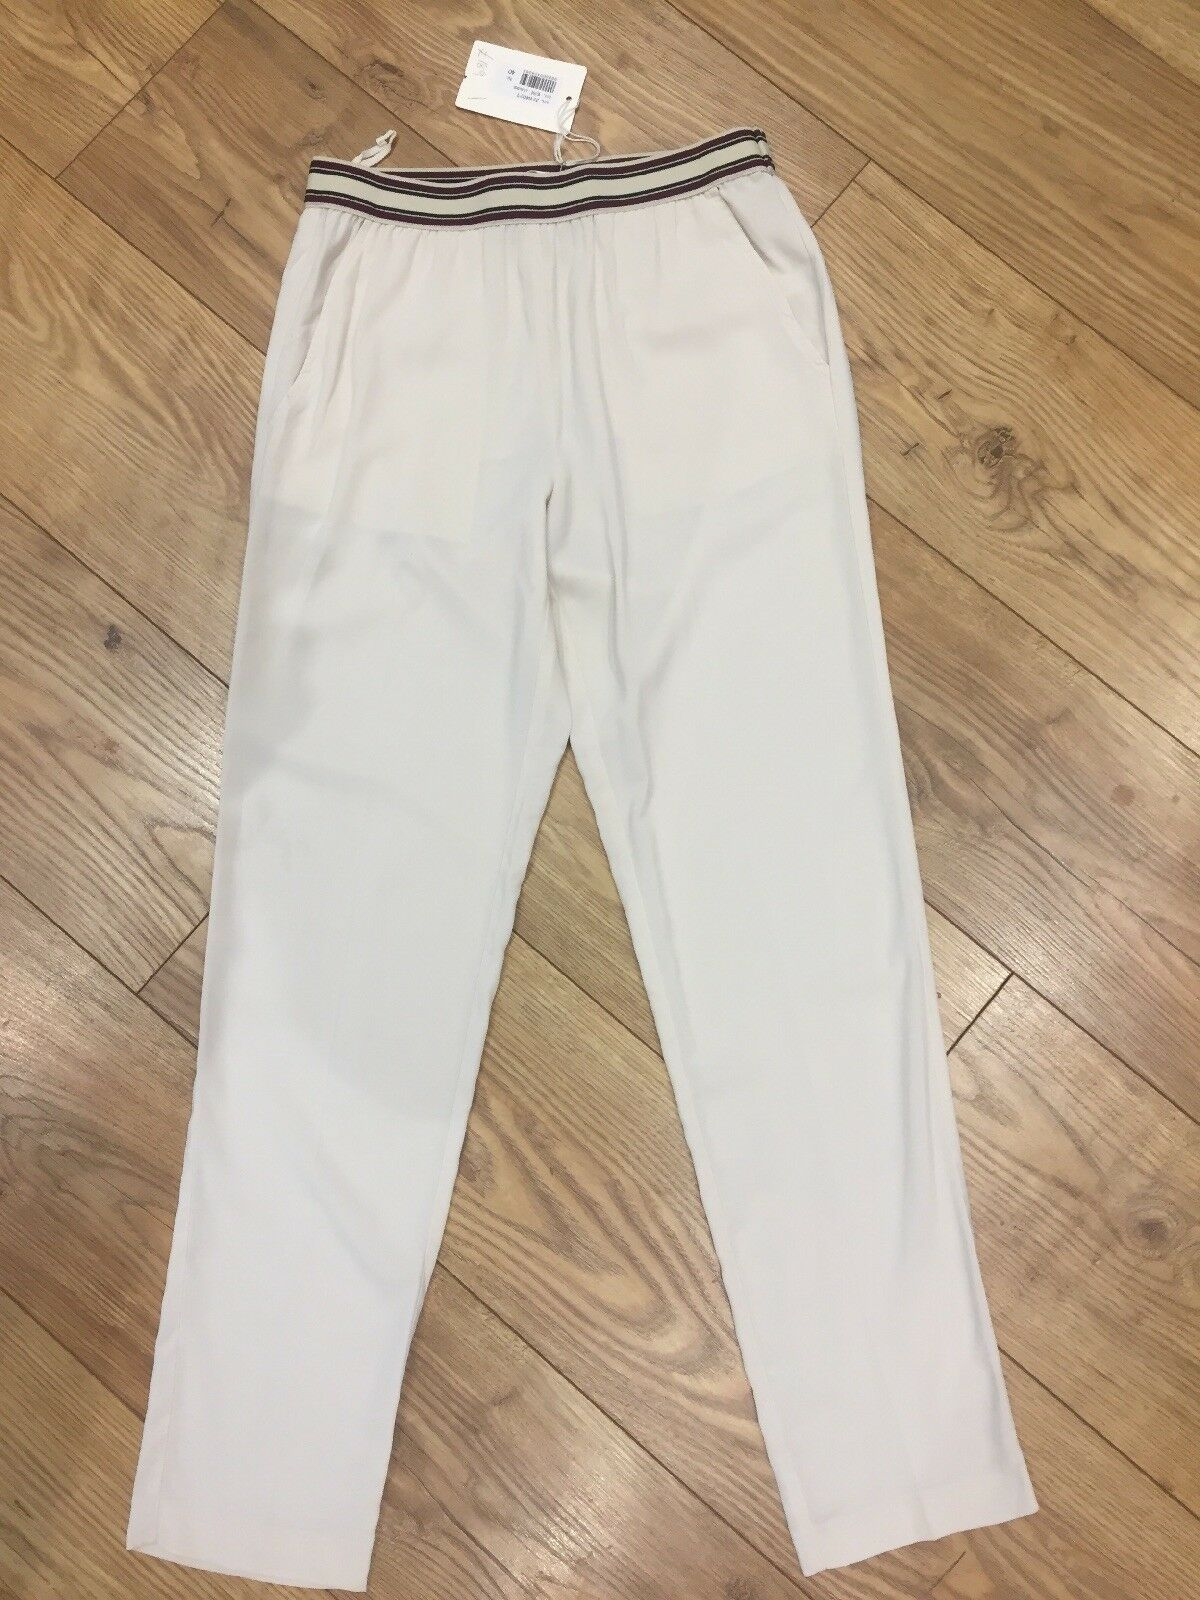 Jucca Lightweight Smart Casual Cream Stretch Trousers IT 40  UK 6   8 New